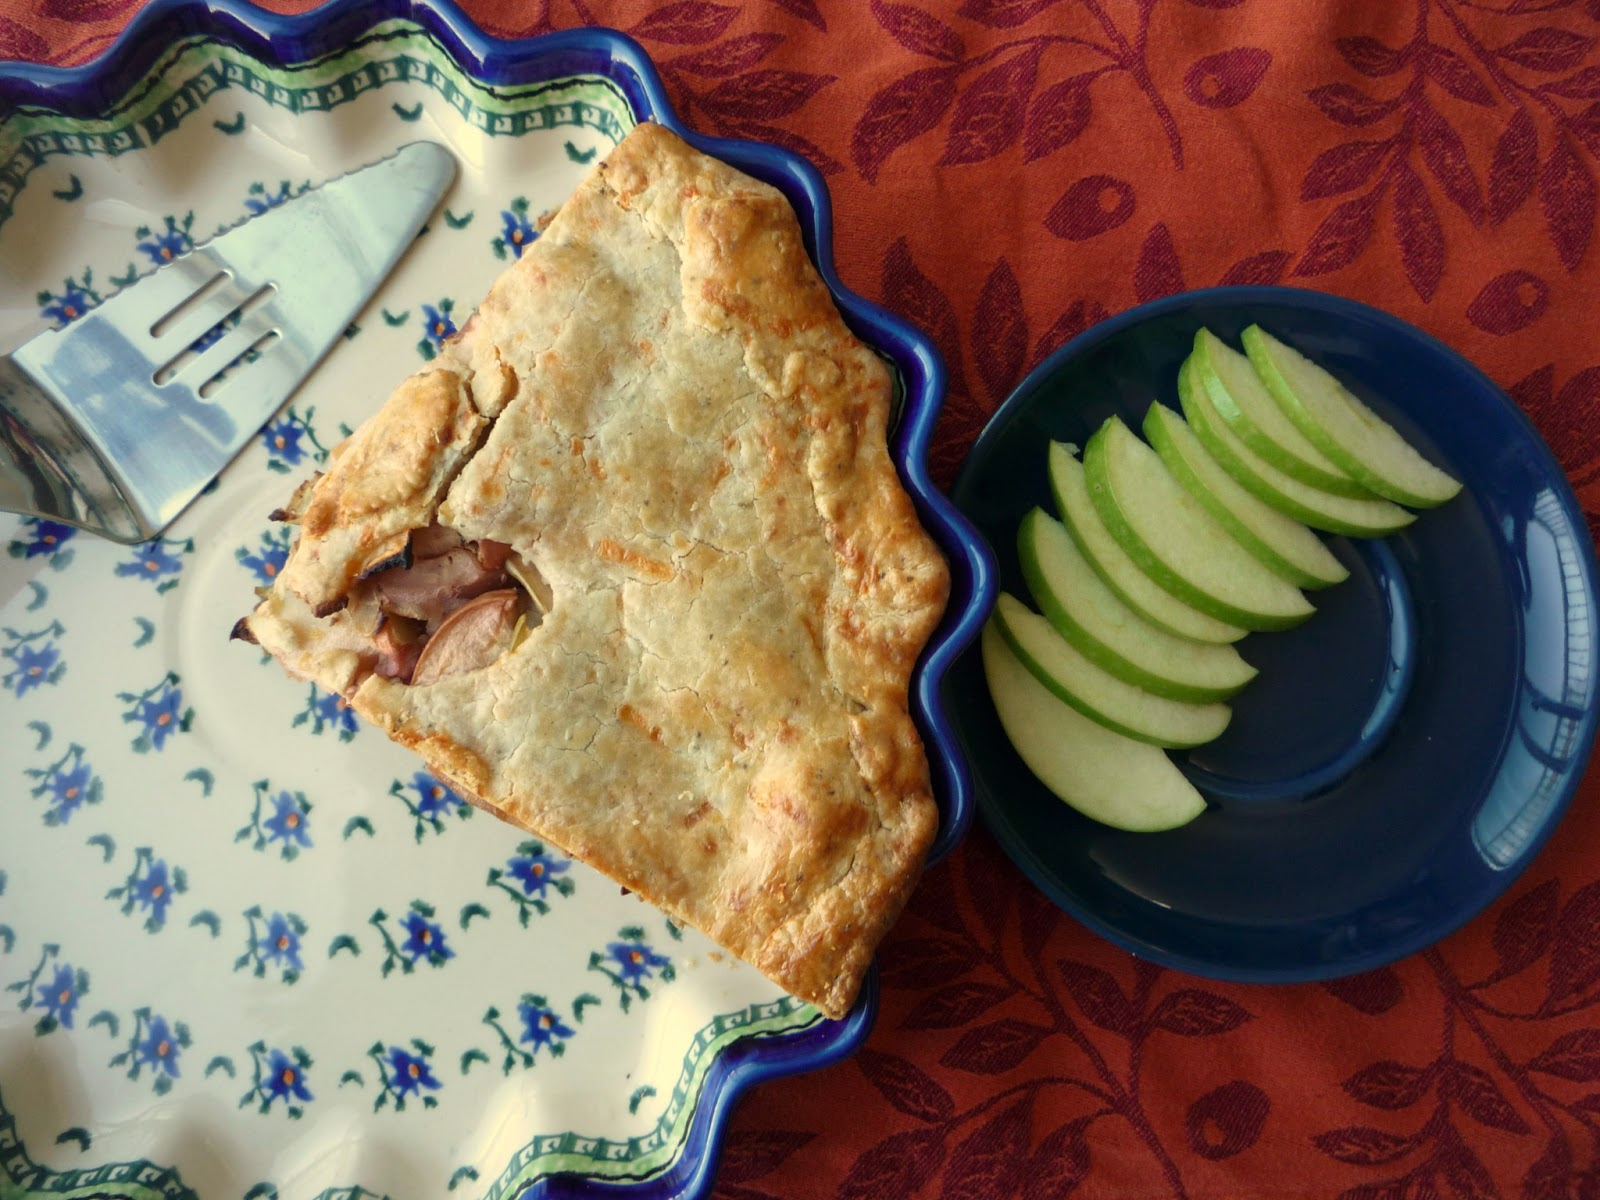 Baeras Con Pies Amazing Dirt Pudding Pie Will Take You Back To The - Baeras-con-pies